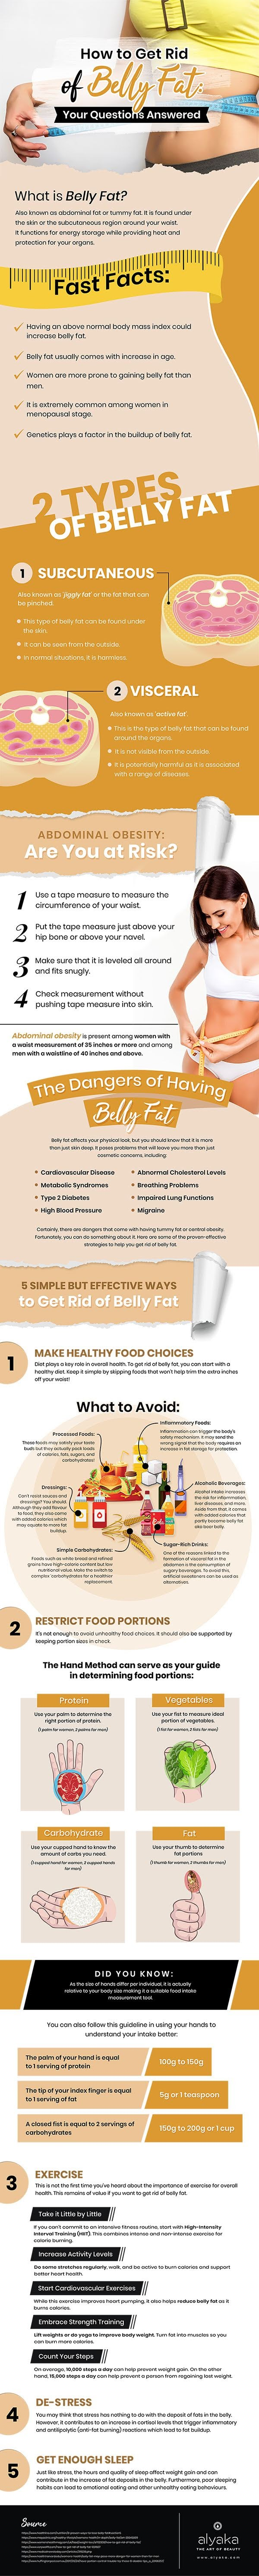 How To Get Rid Of Belly Fat: Your Questions Answered #infographic